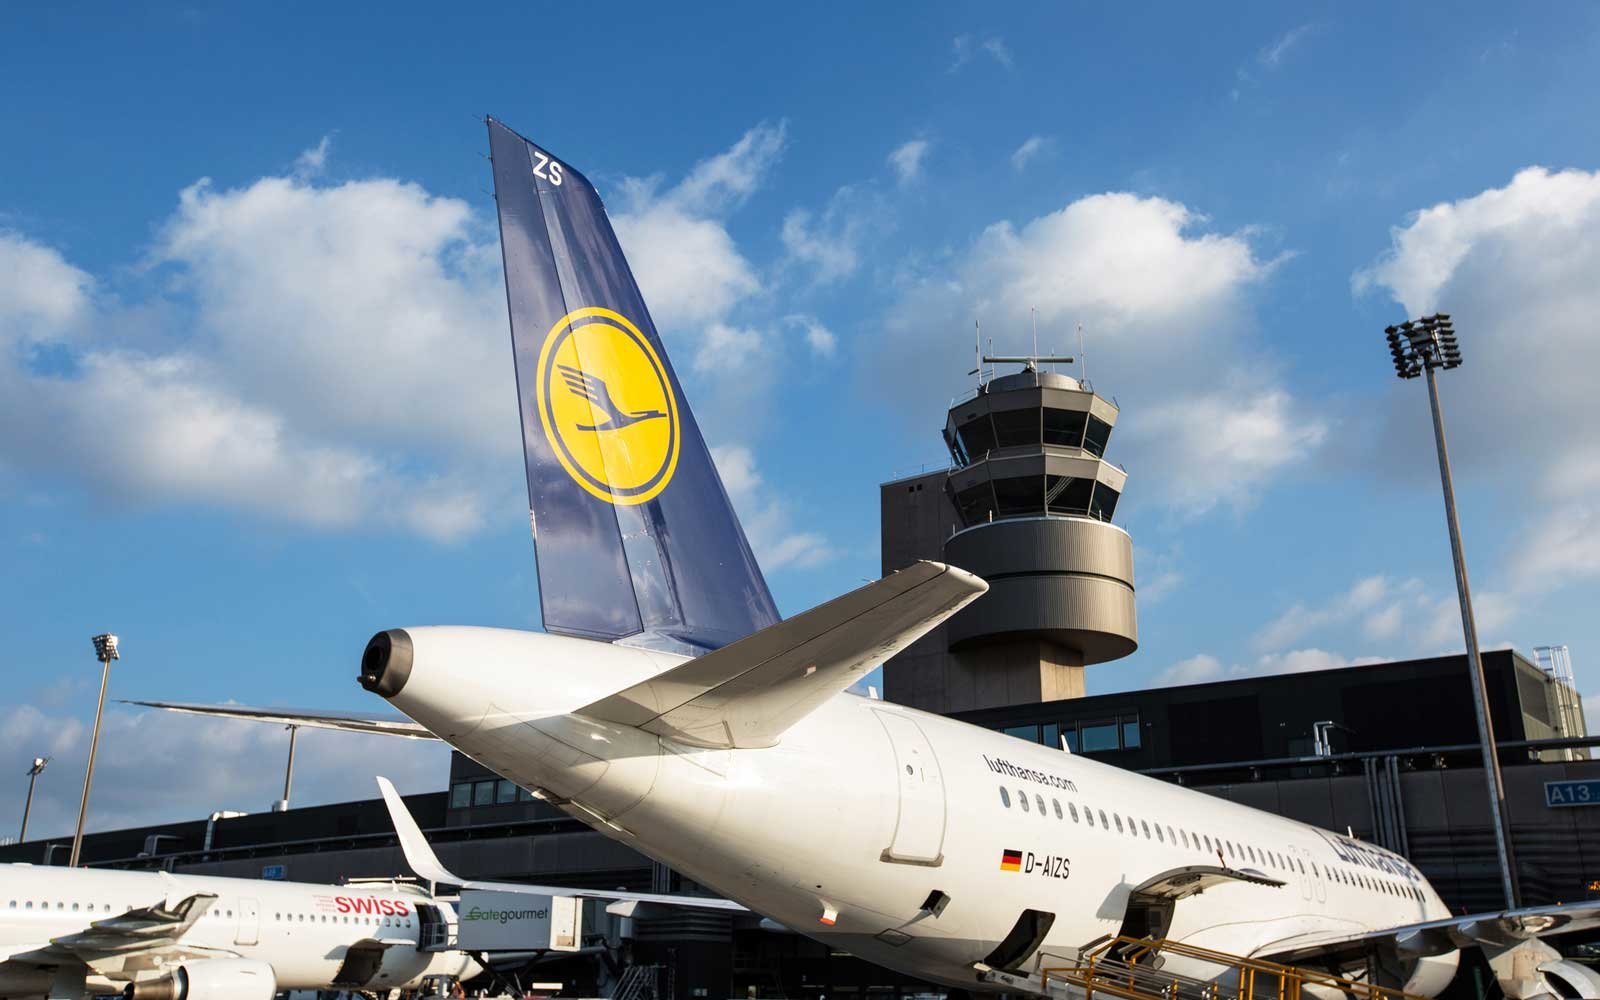 Lufthansa Swiss Air Miles & More Loyalty Program